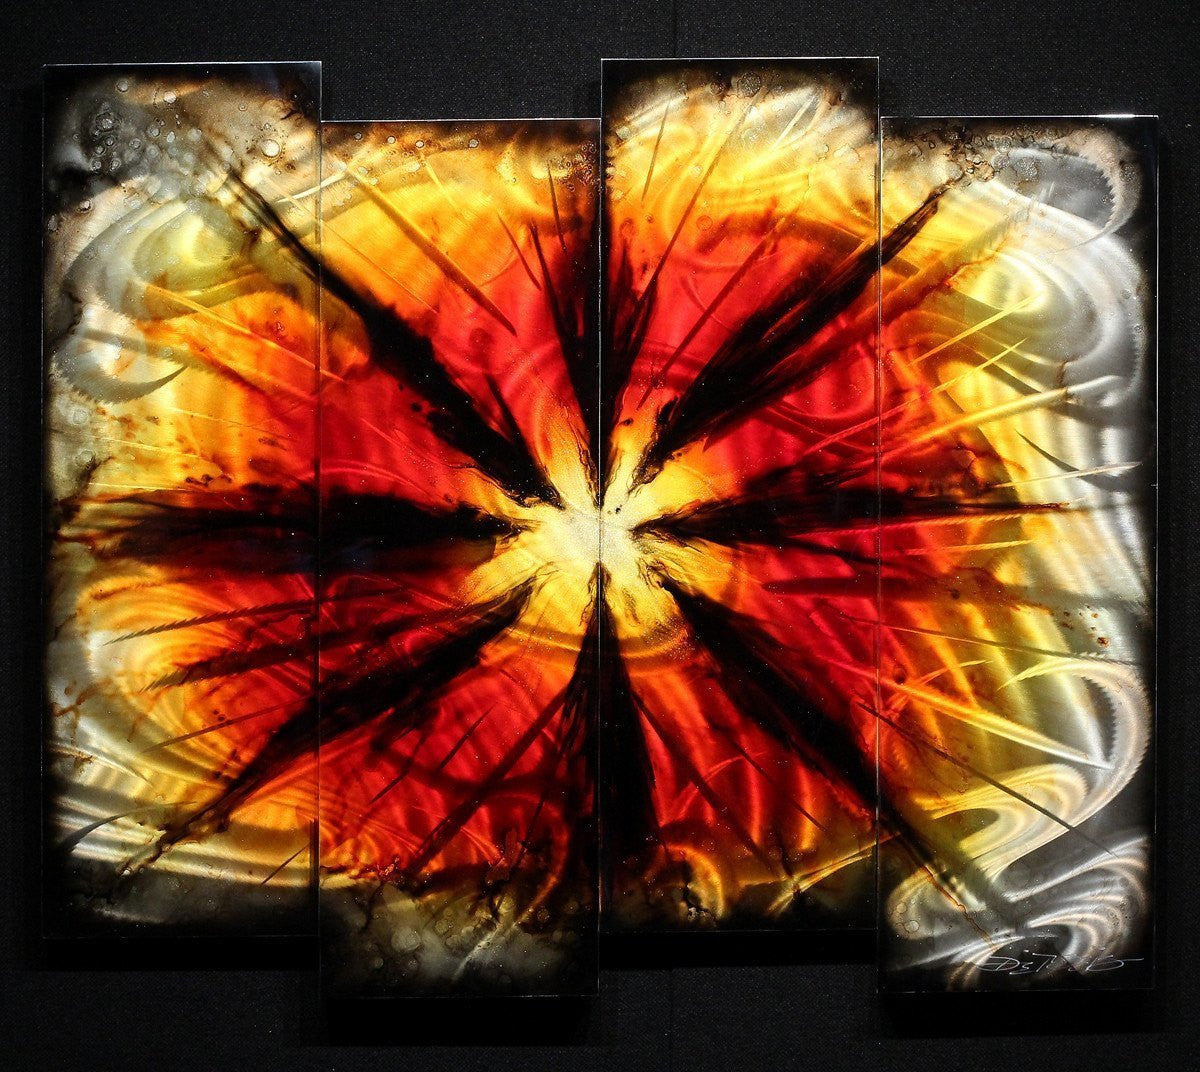 Red Burst - SOLD Chris DeRubeis